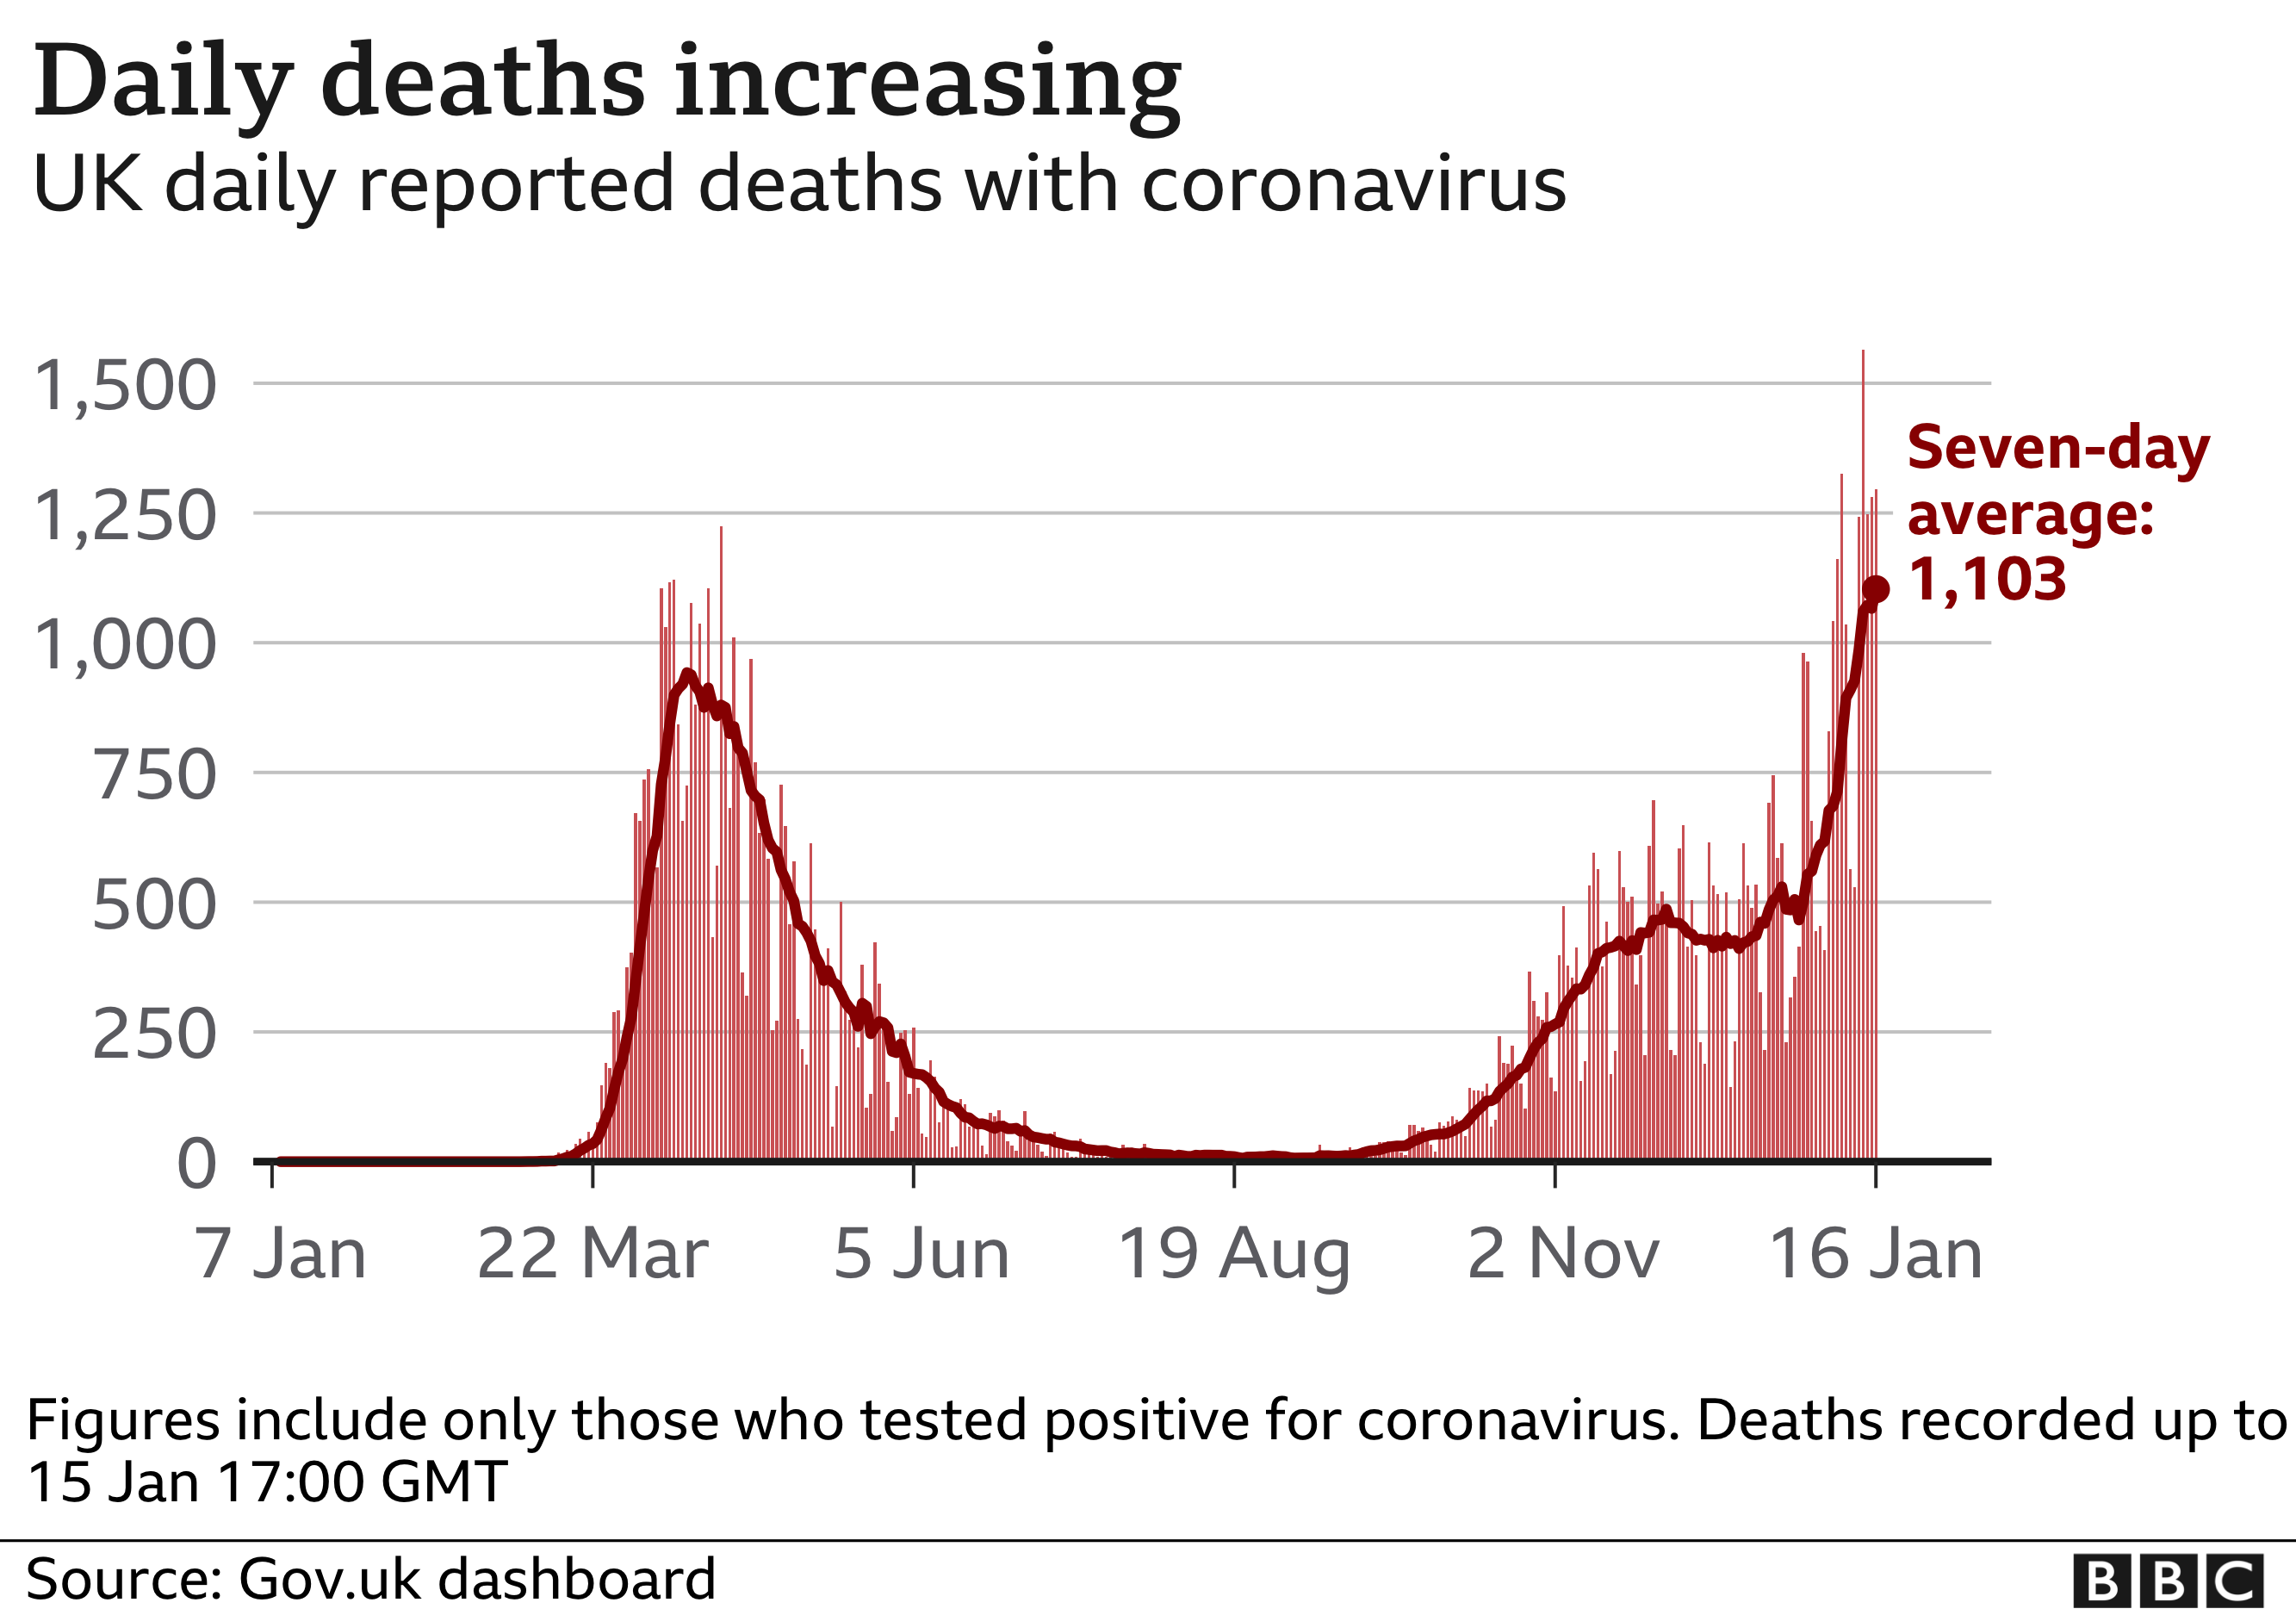 Chart showing daily deaths increasing in the UK